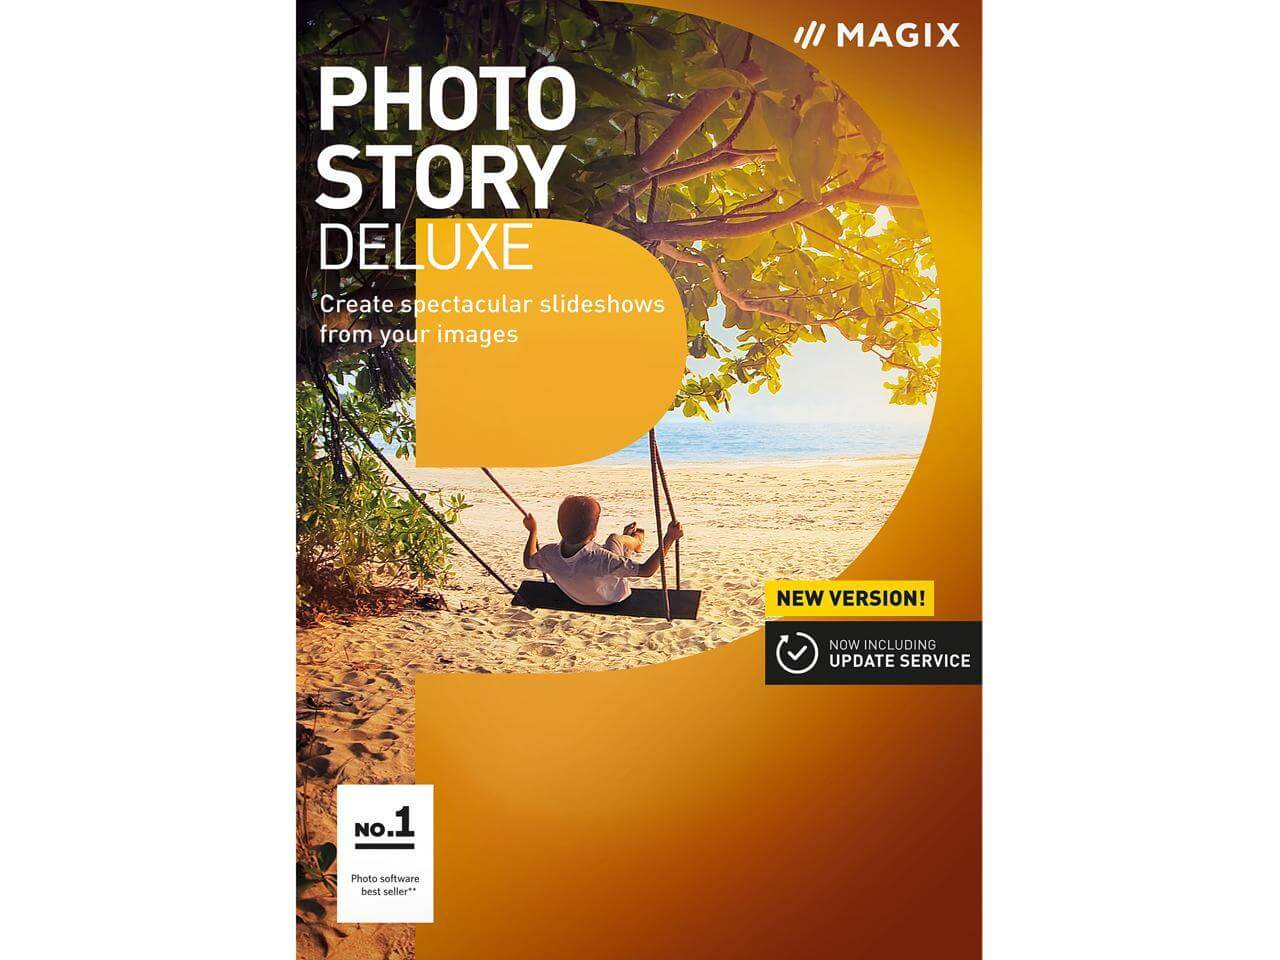 MAGIX Photostory 2022 Deluxe 20.0.1.87 With Full Crack